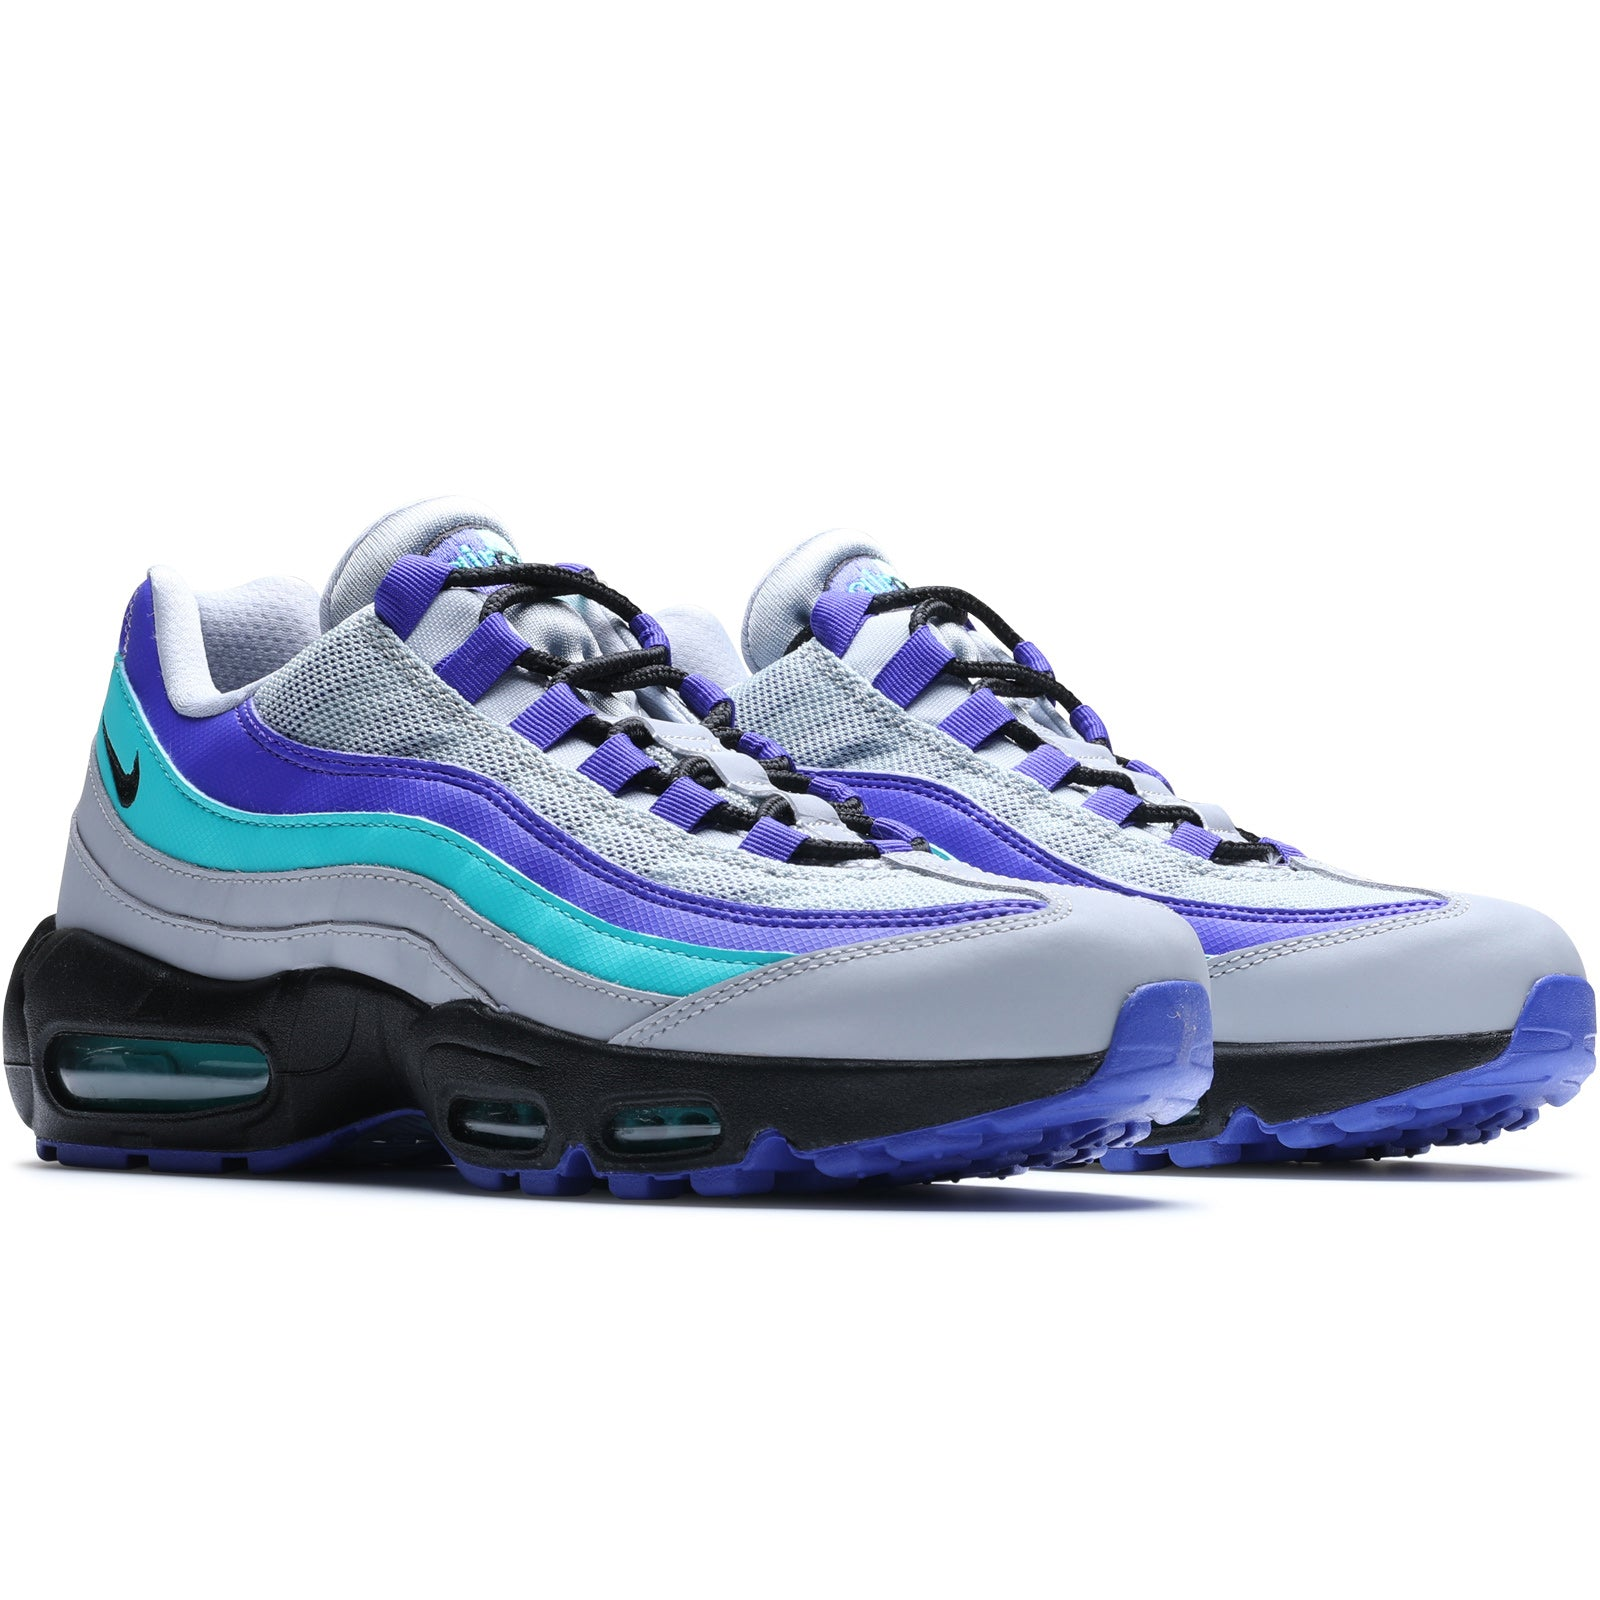 first rate d3ca7 fc2d5 Nike Air Max 95 OG WOLF GREYBLACK-INDIGO BURST-HYPER JADE AT2865-001.  Retail 160